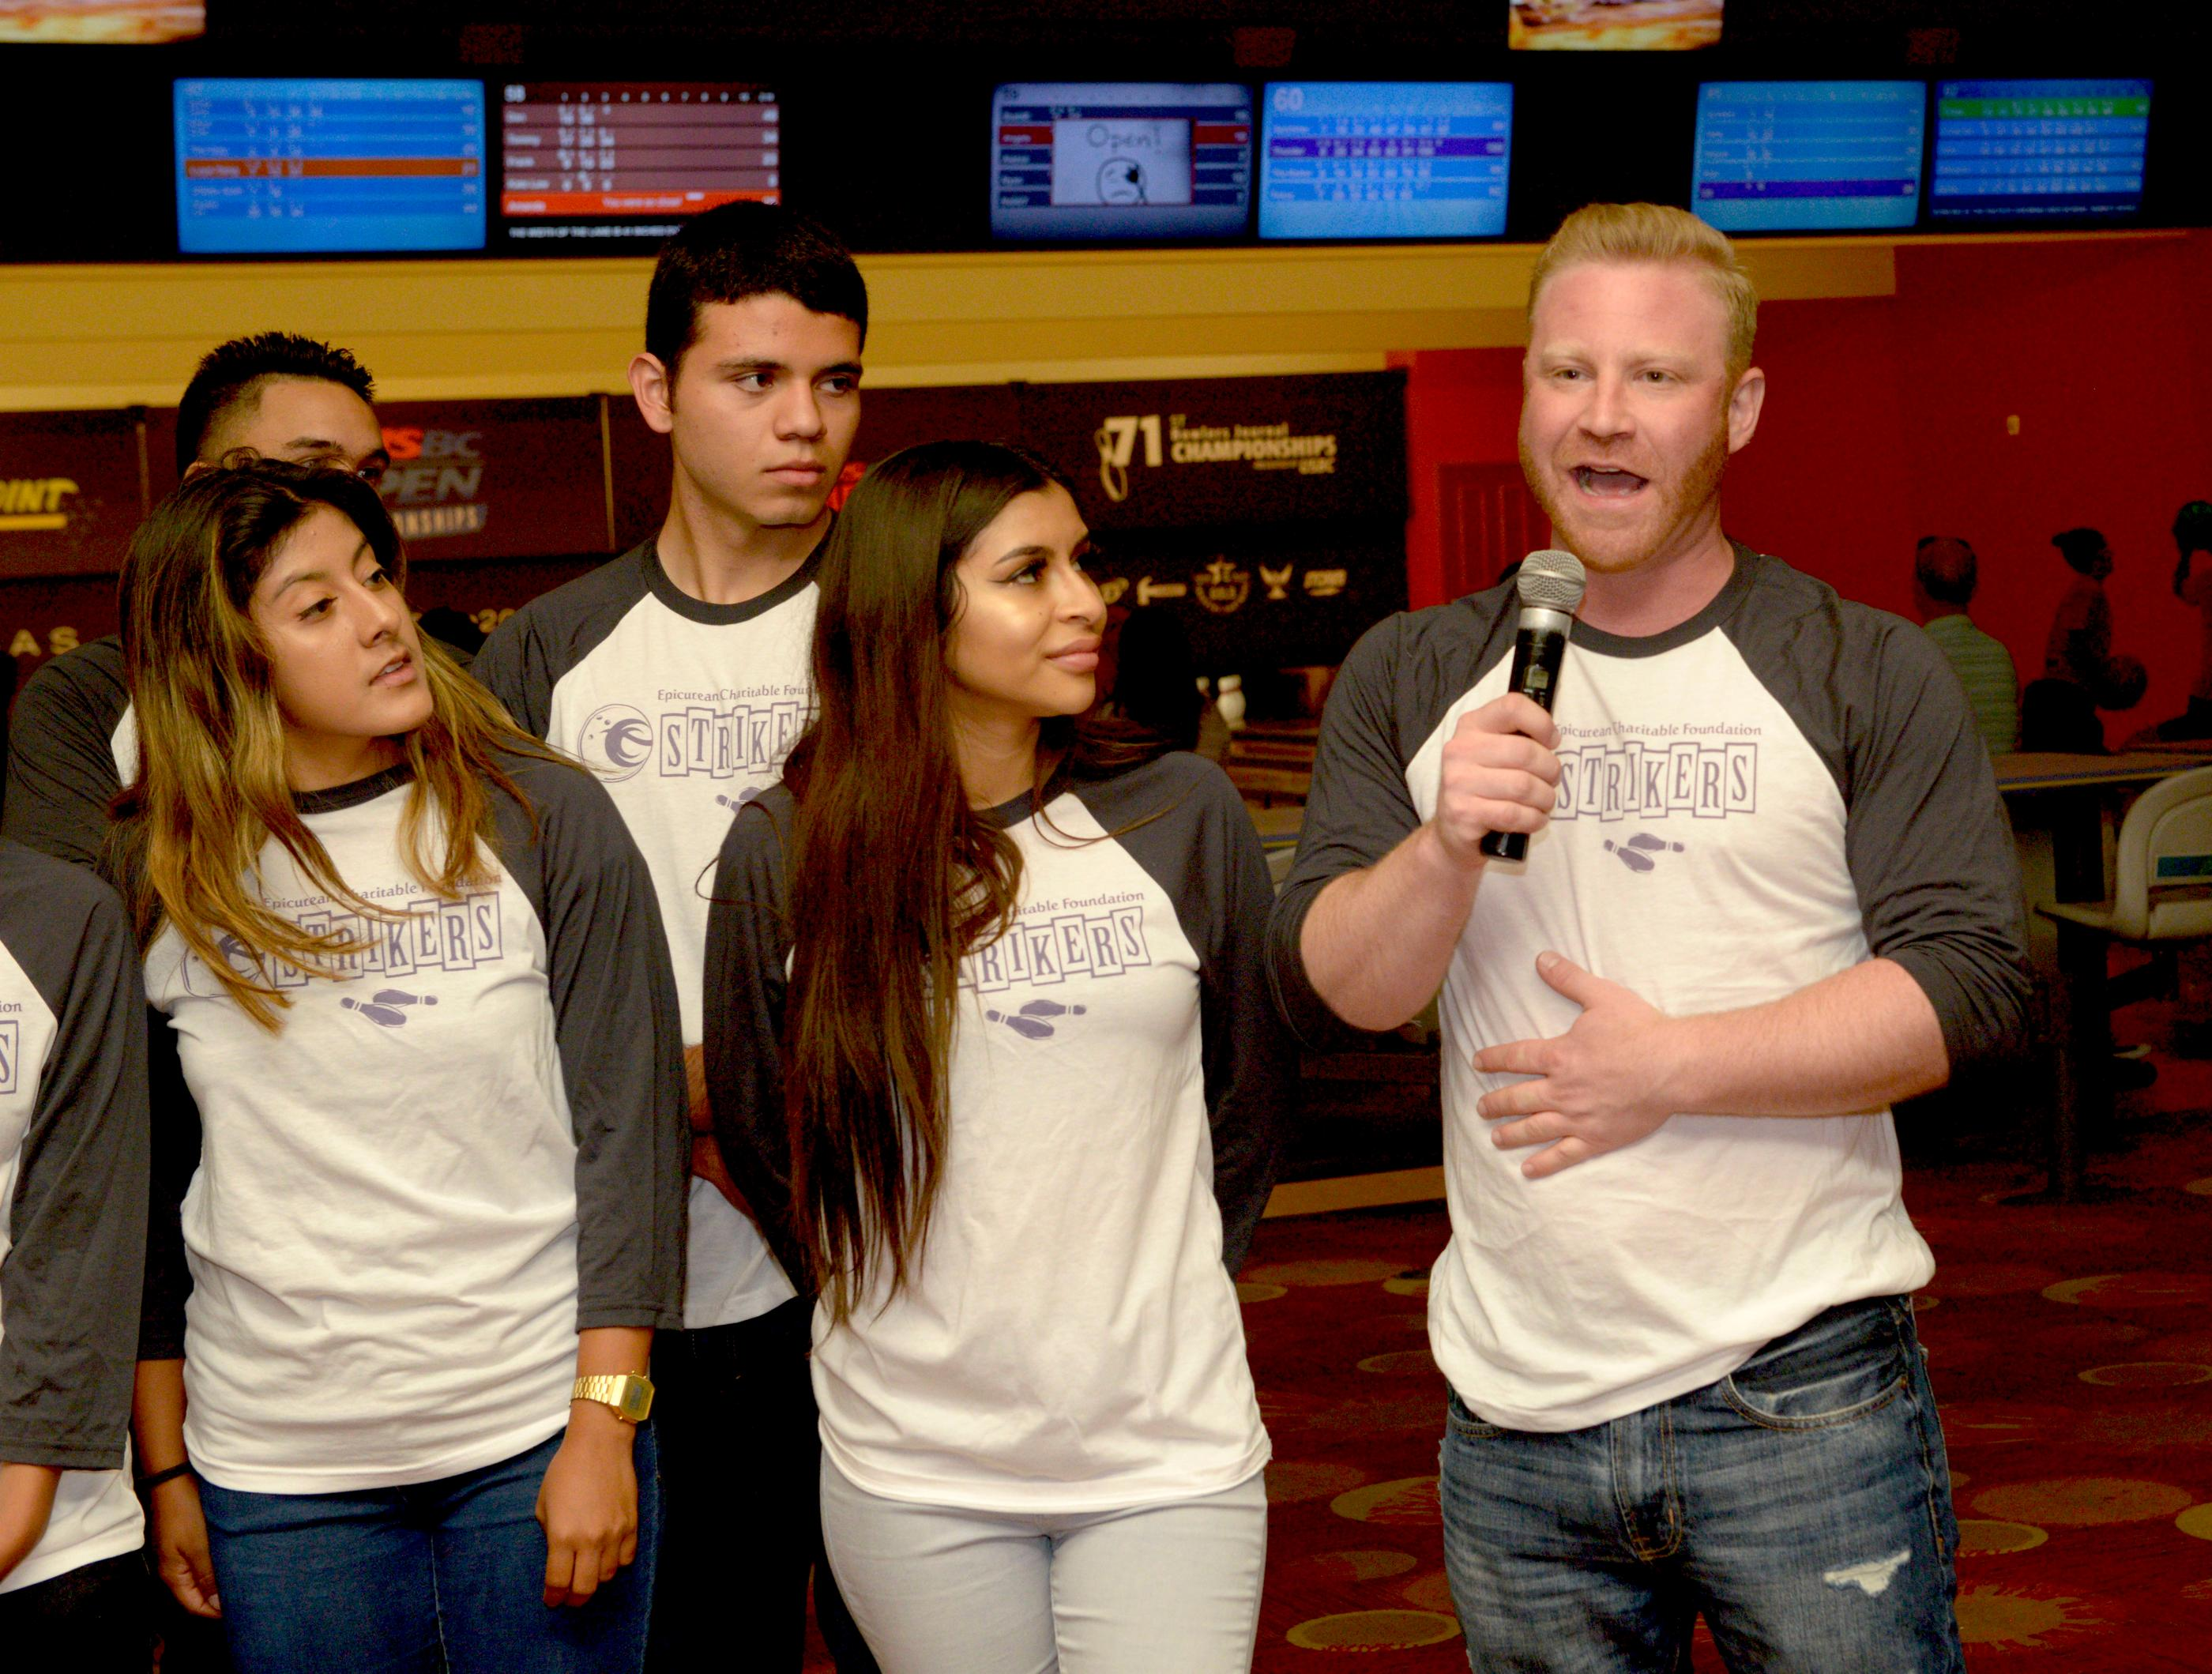 Epicurean Charitable Foundation hosts Strikes for Scholarships Bowling Tournament at the South Point Hotel & Casino. This event provides scholarships and unique mentorships for local students passionate about pursuing a career in hospitality or culinary arts. Sunday, August 27, 2017. [Glenn Pinkerton/Las Vegas News Bureau]